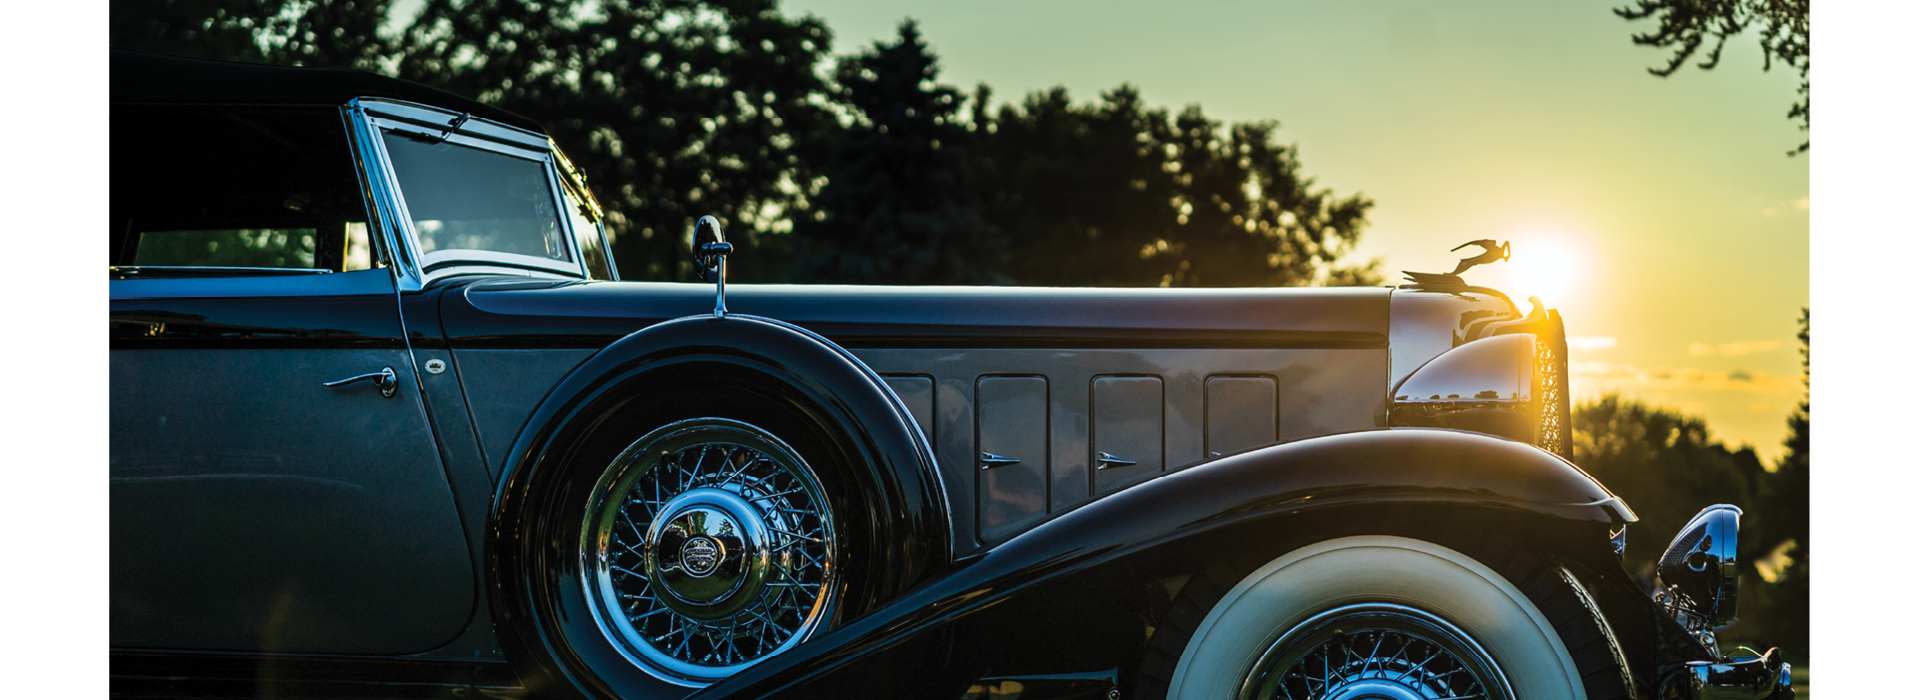 Concours d'Elegance of America